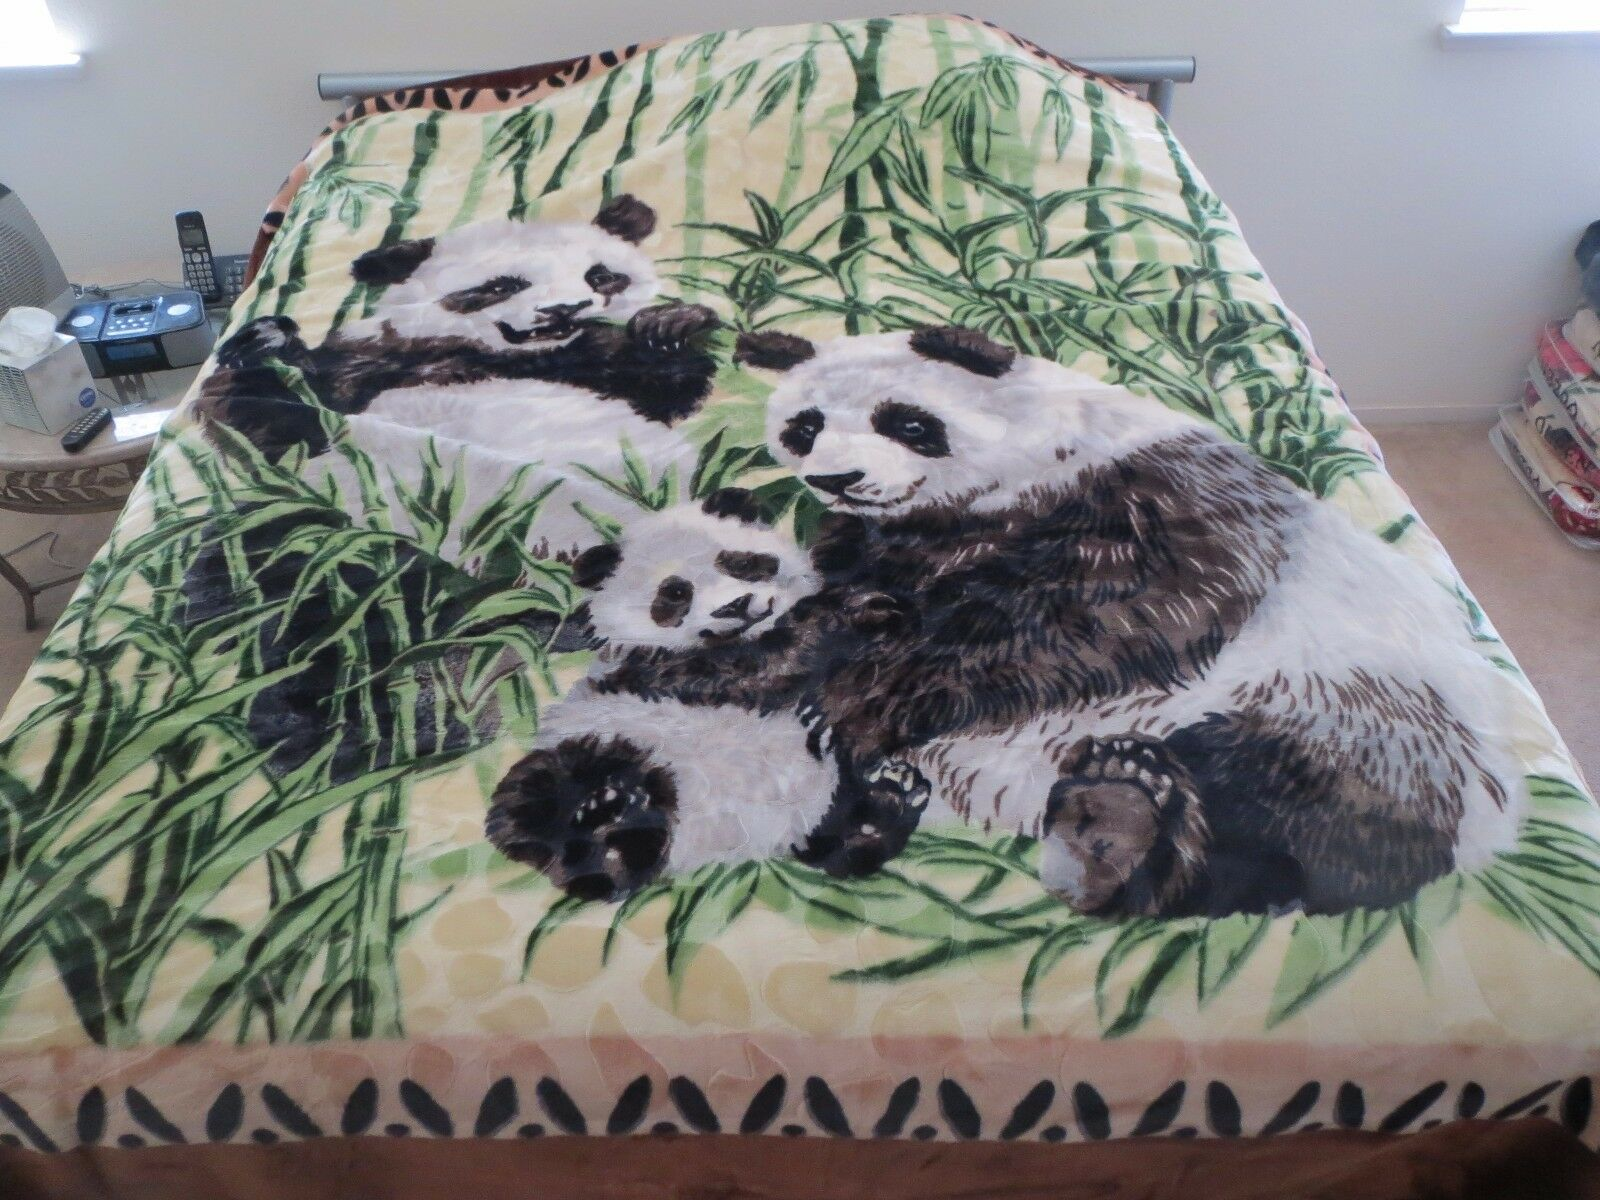 NEW  KING KOREAN style MINK heavy weight blanket PANDA pandas family NEW 10 lbs